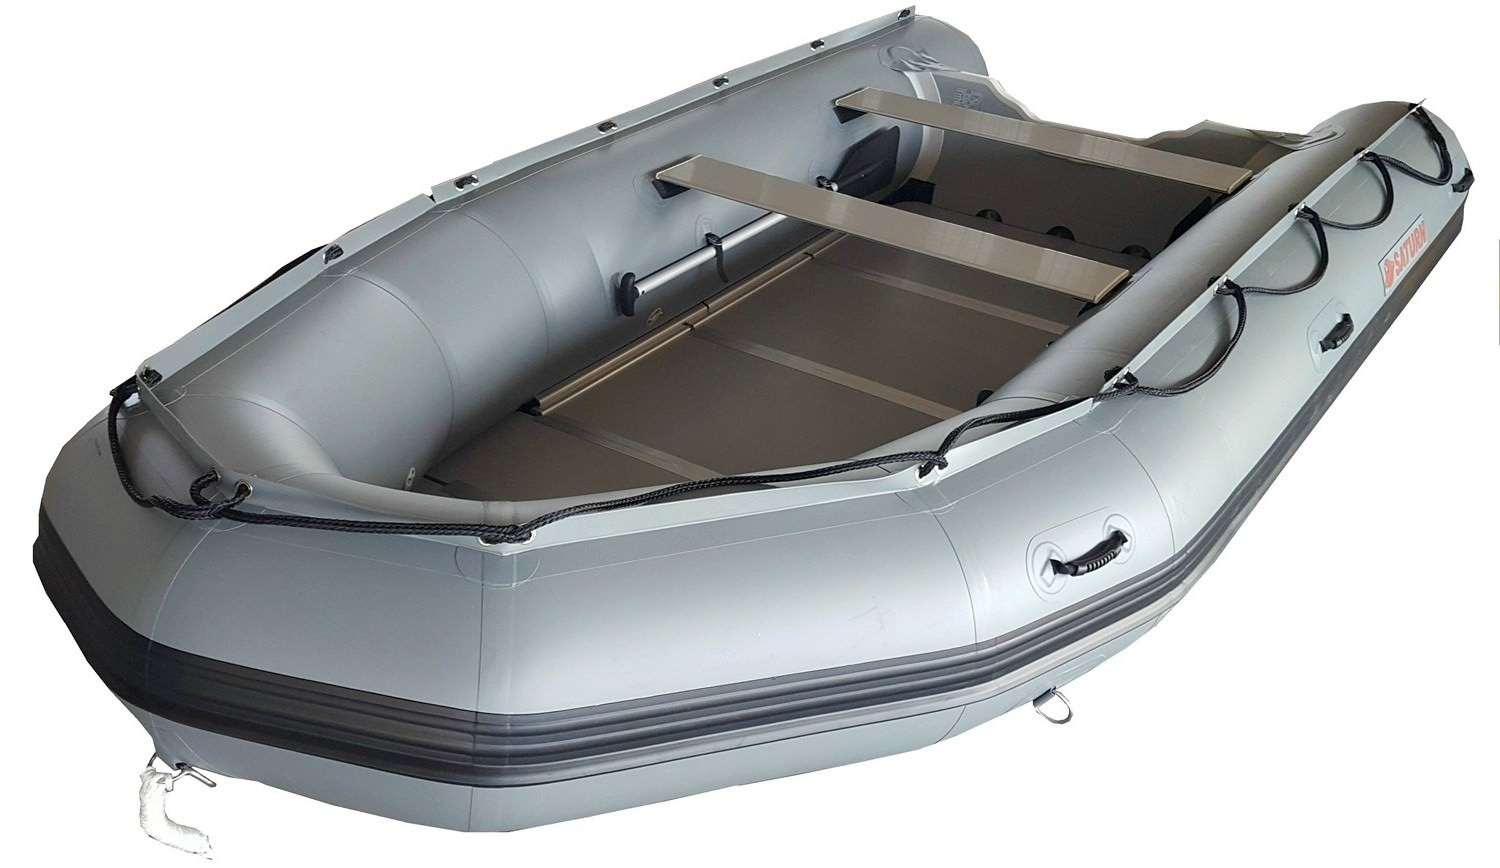 14 saturn dinghy tender sd 430 14 saturn inflatable boat sd430 gun metal gray alum ccuart Images